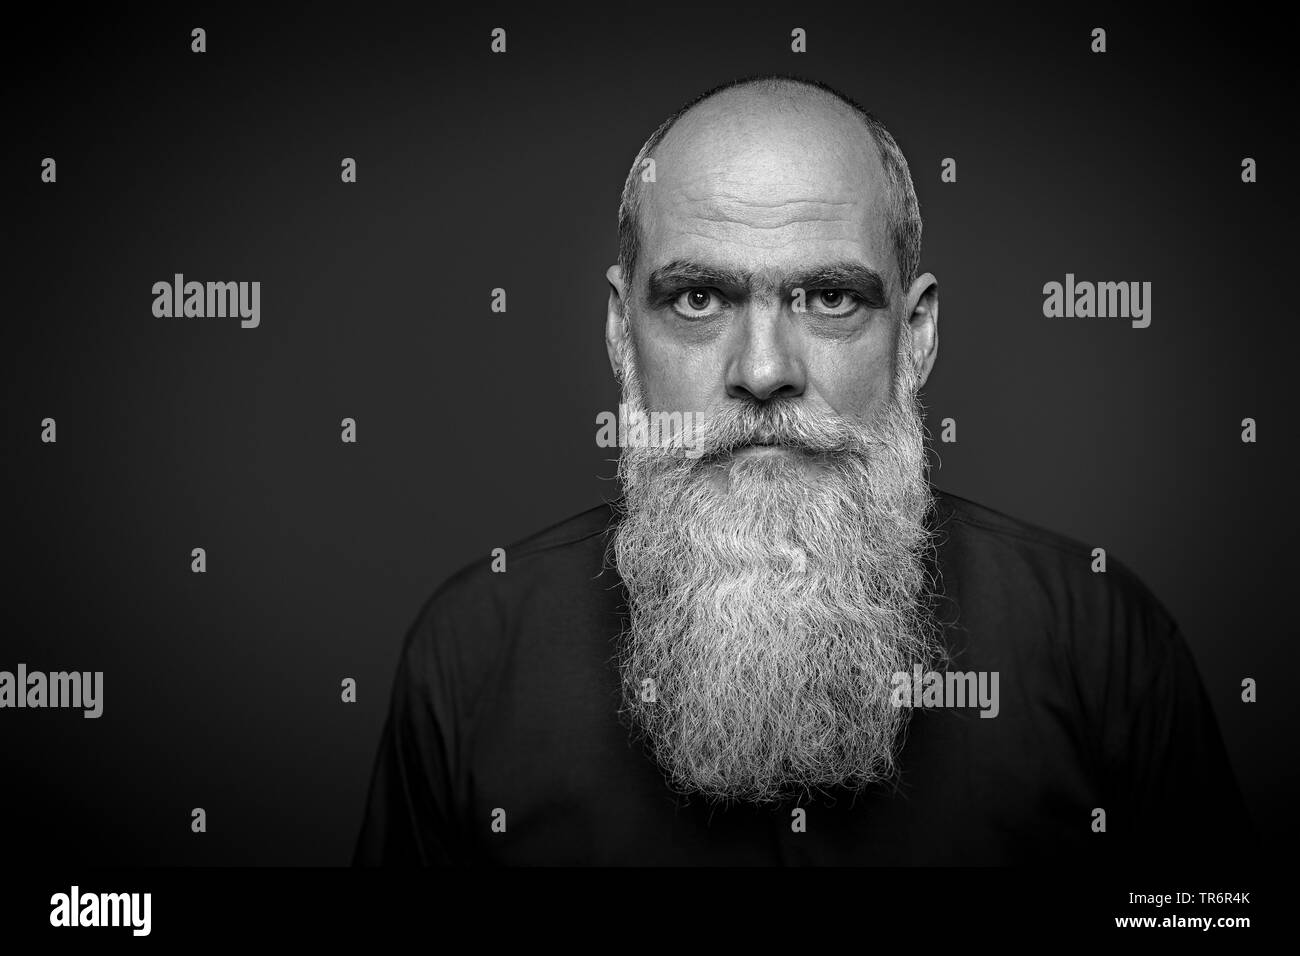 male portrait with long beard, Germany - Stock Image